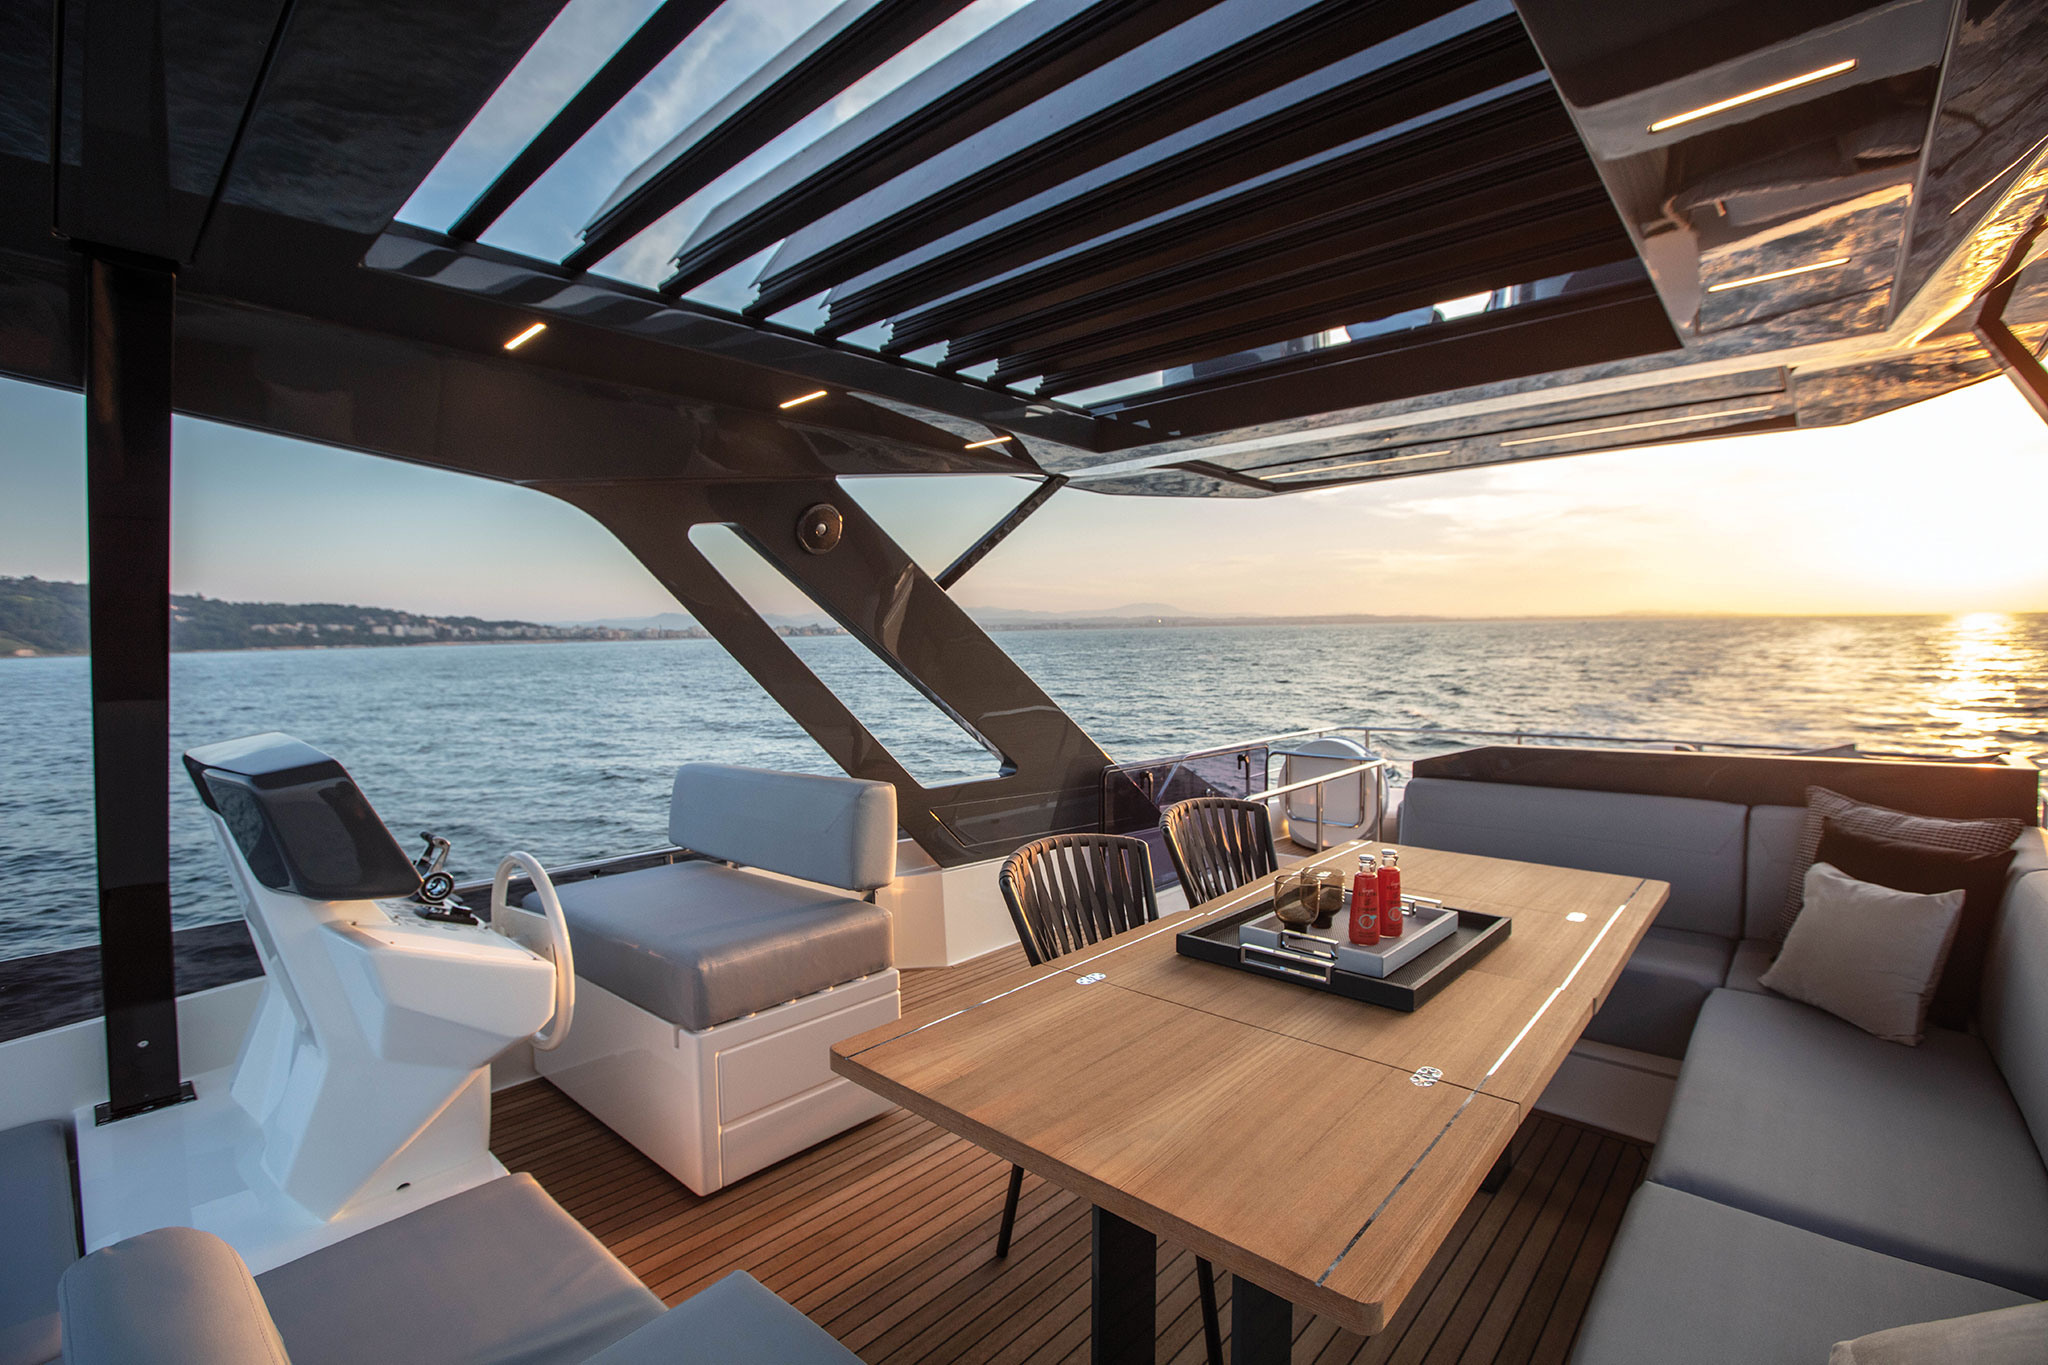 ferretti-Yachts-720-flybridge-lounge-yachts-france-173